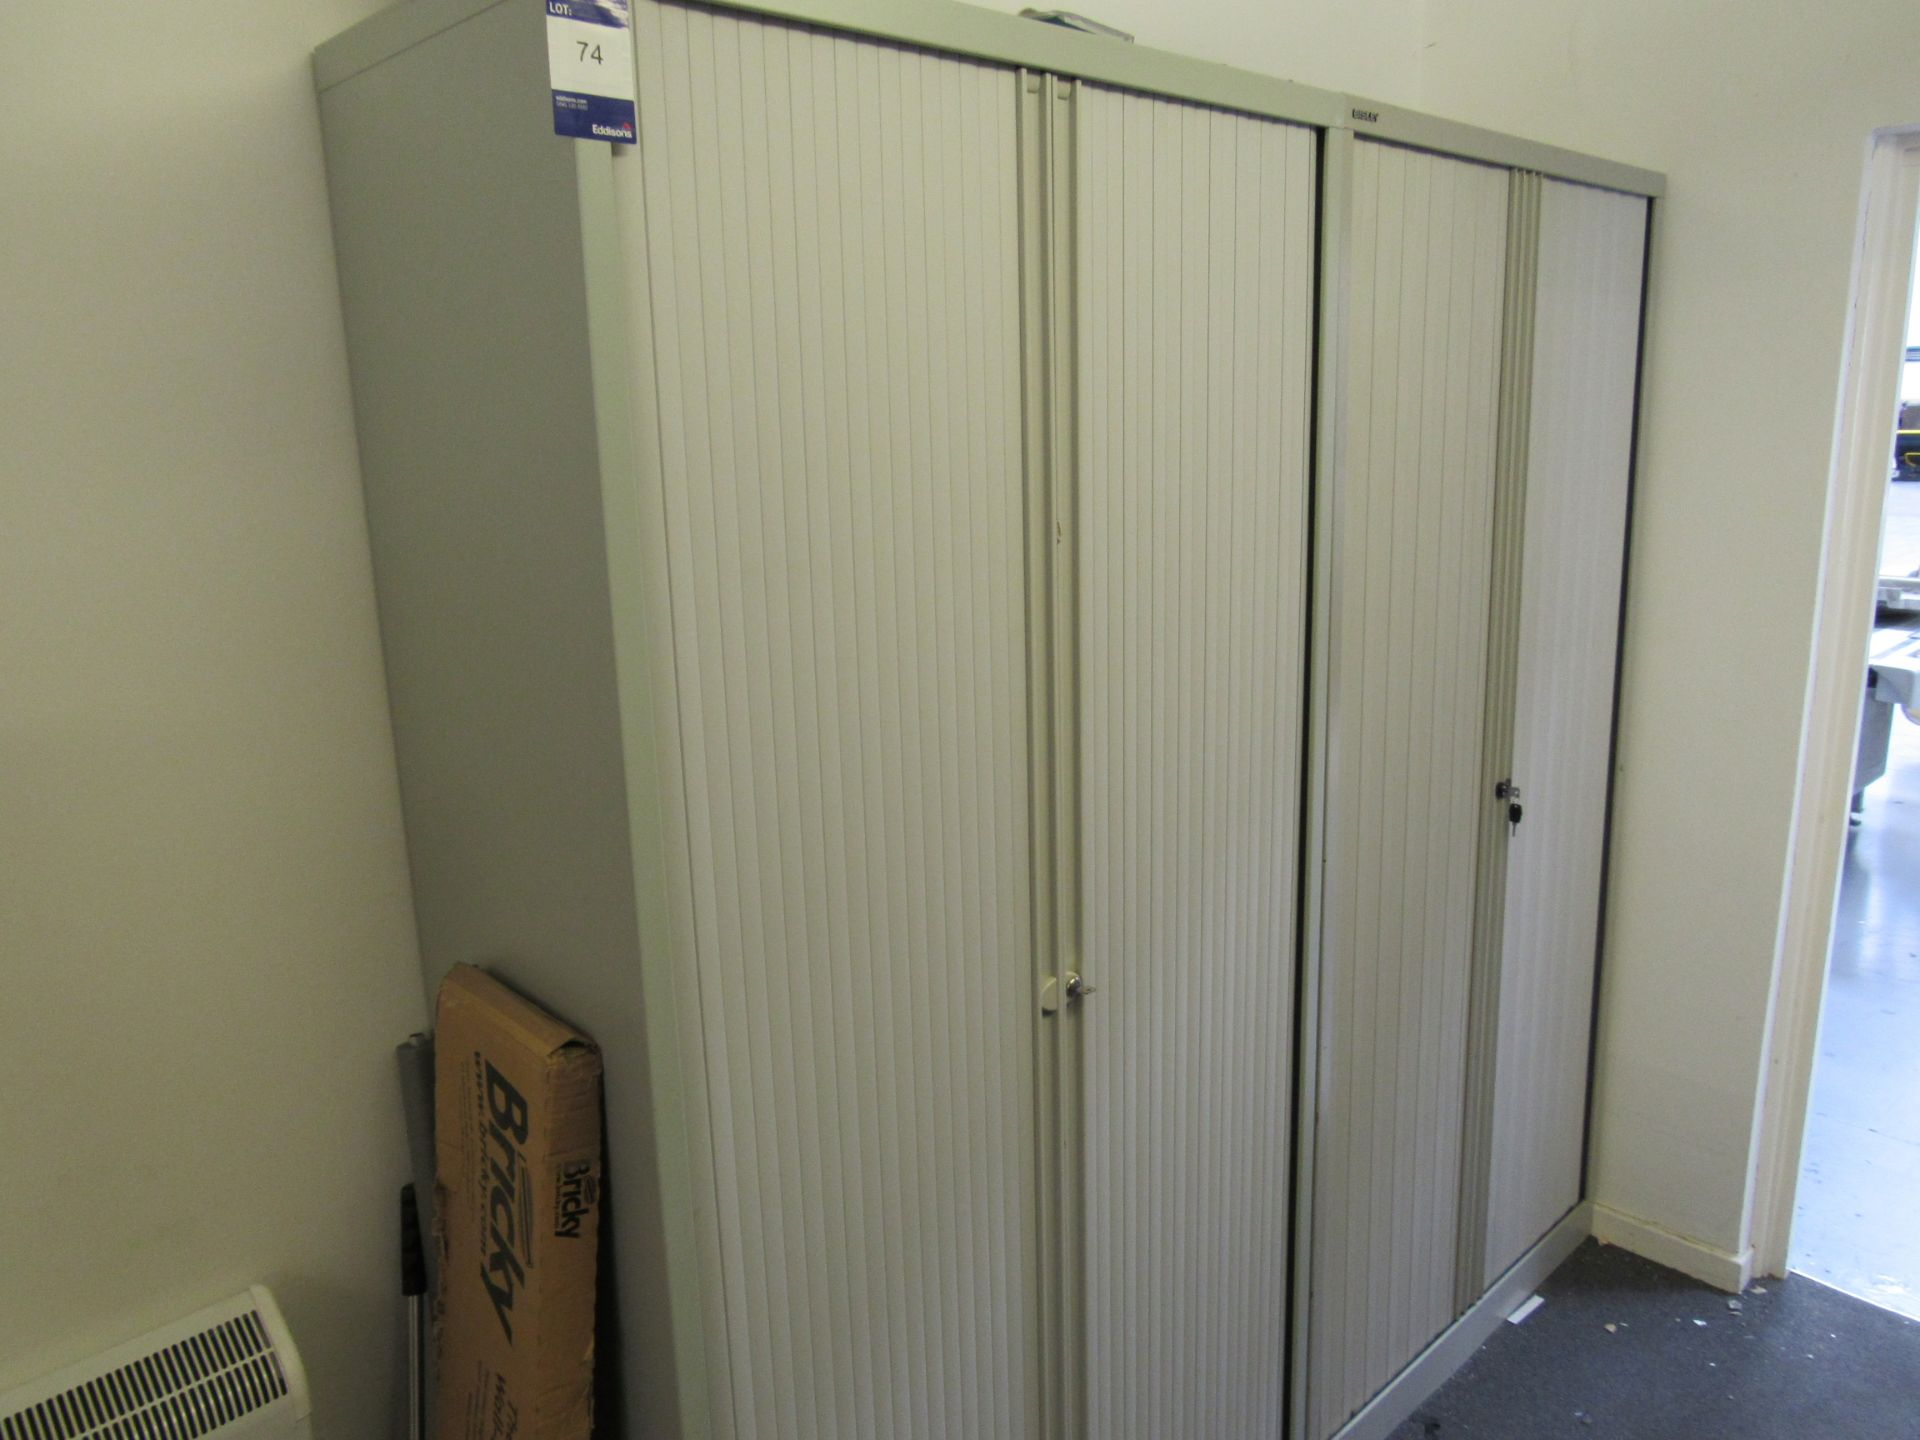 2 x Bisley tambour fronted cabinets (Approximately 1970 x 1000)